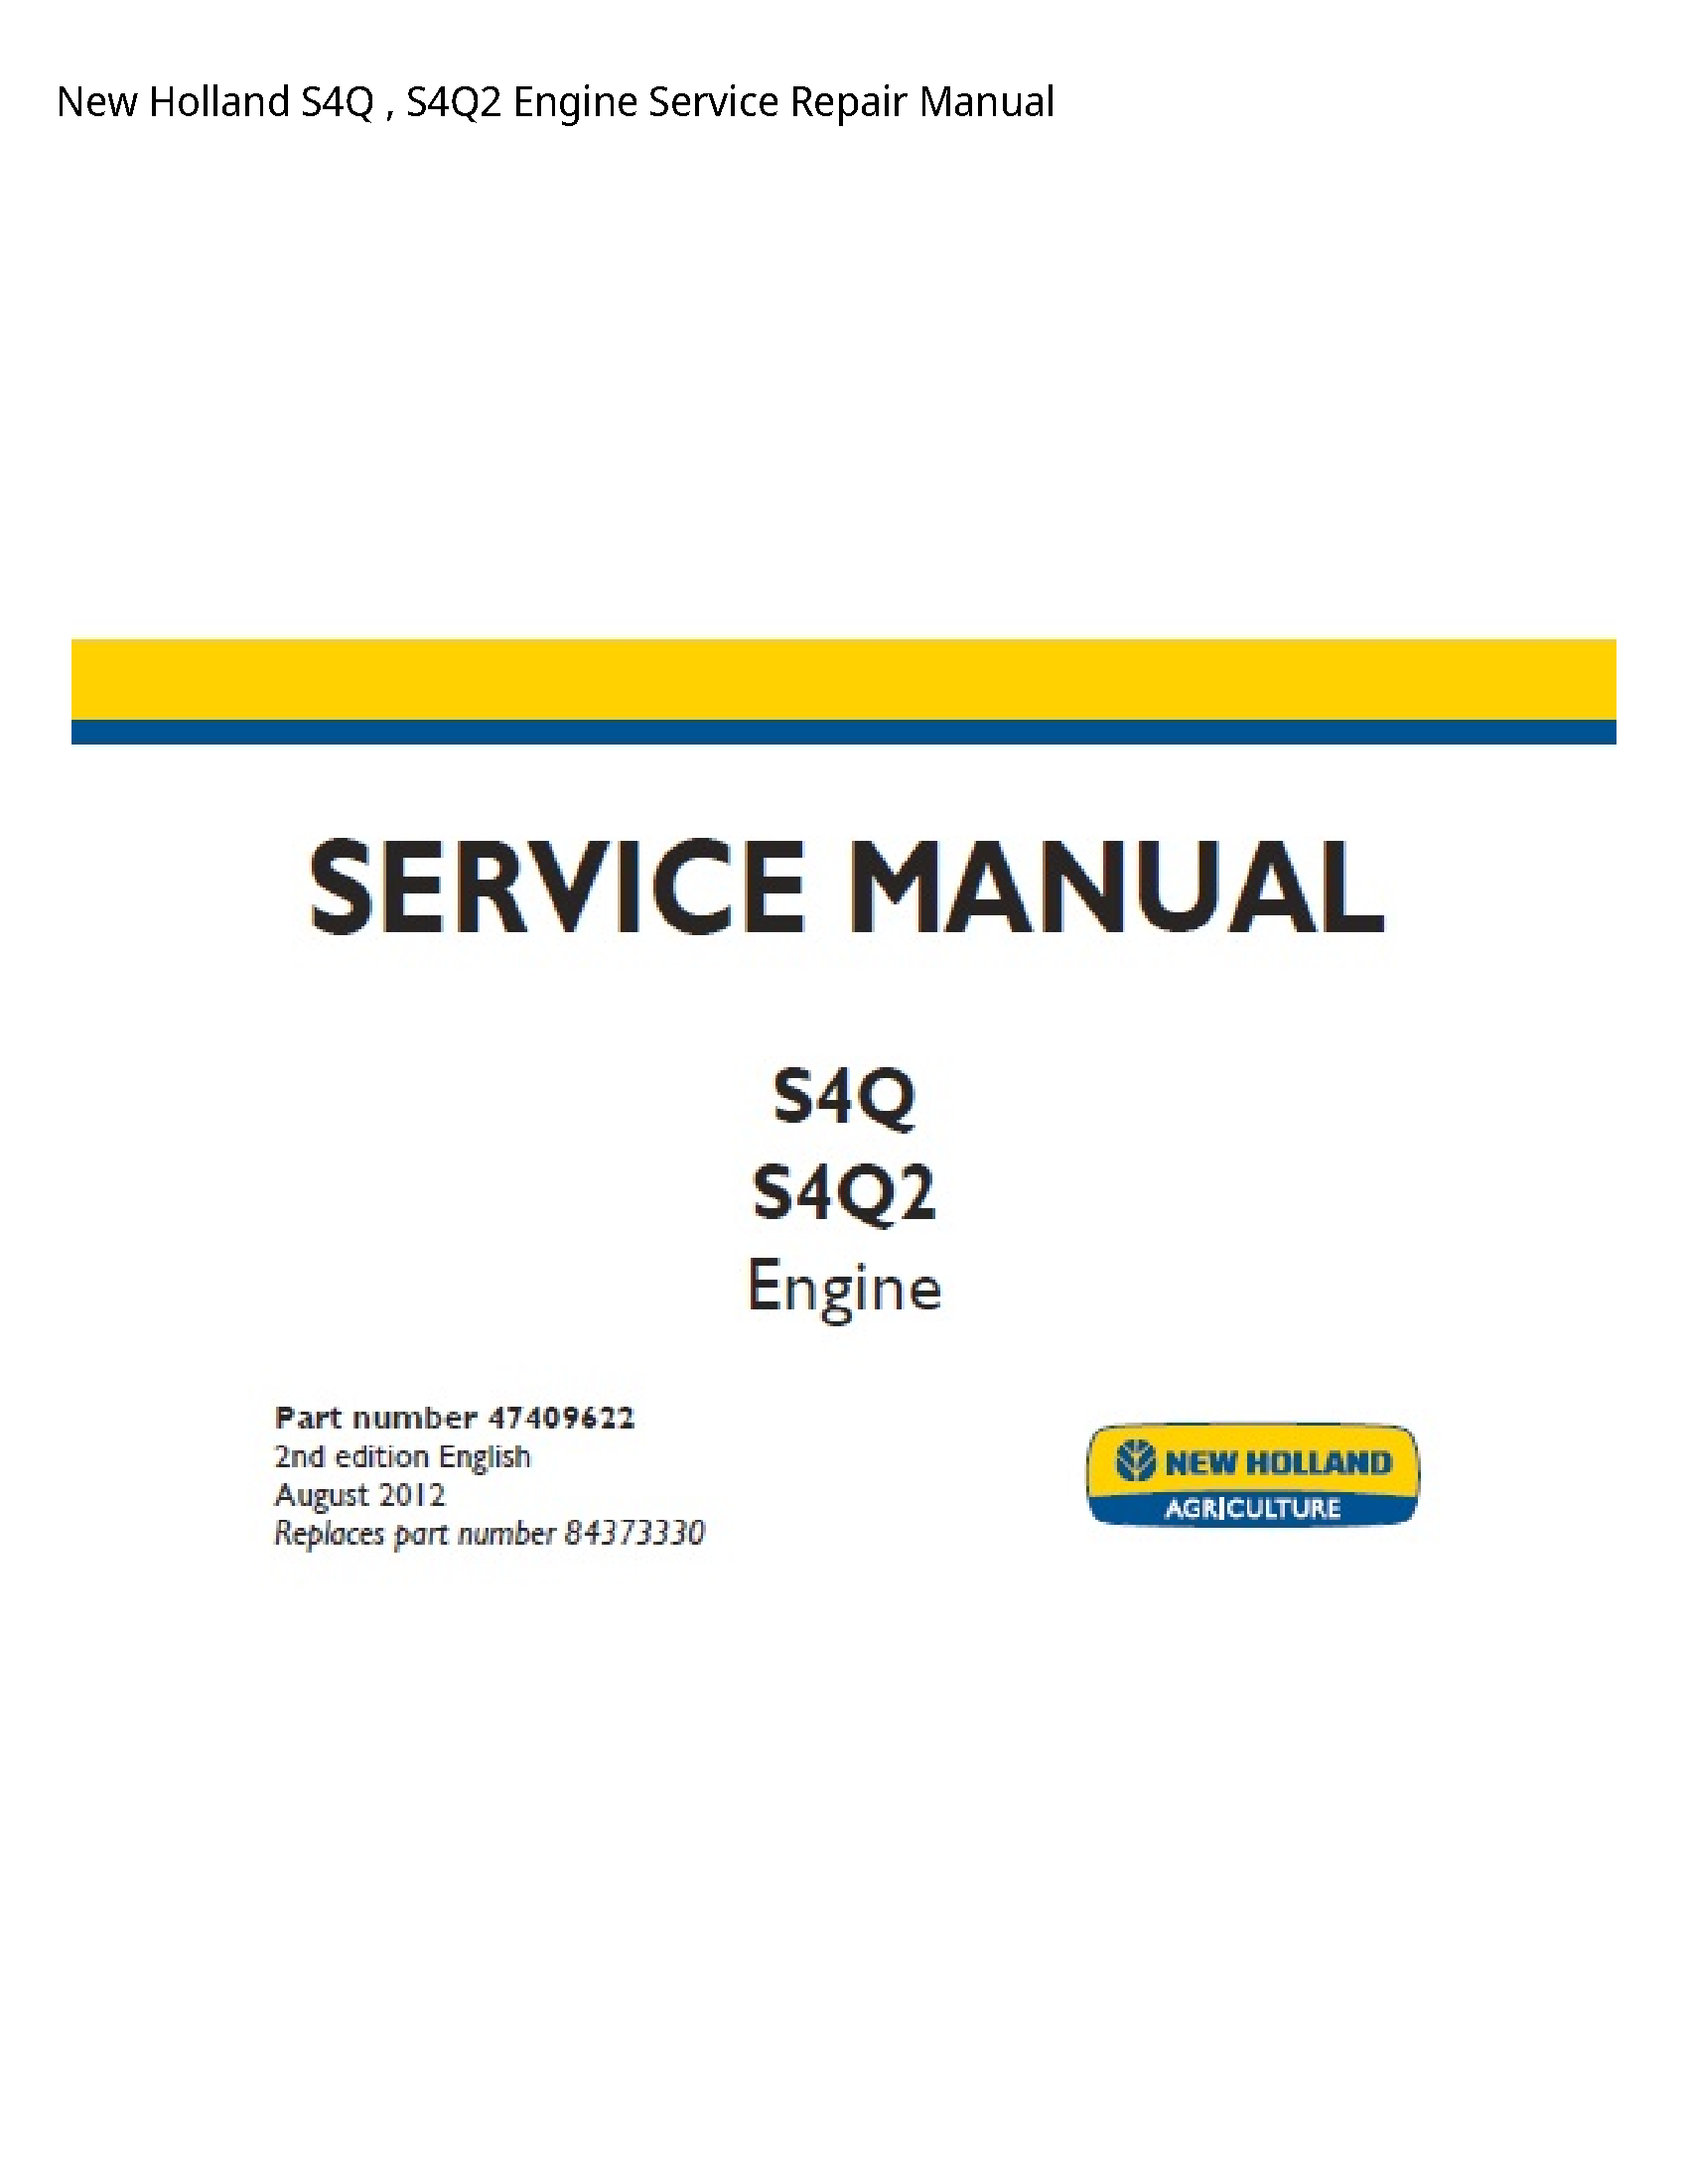 New Holland S4Q Engine manual